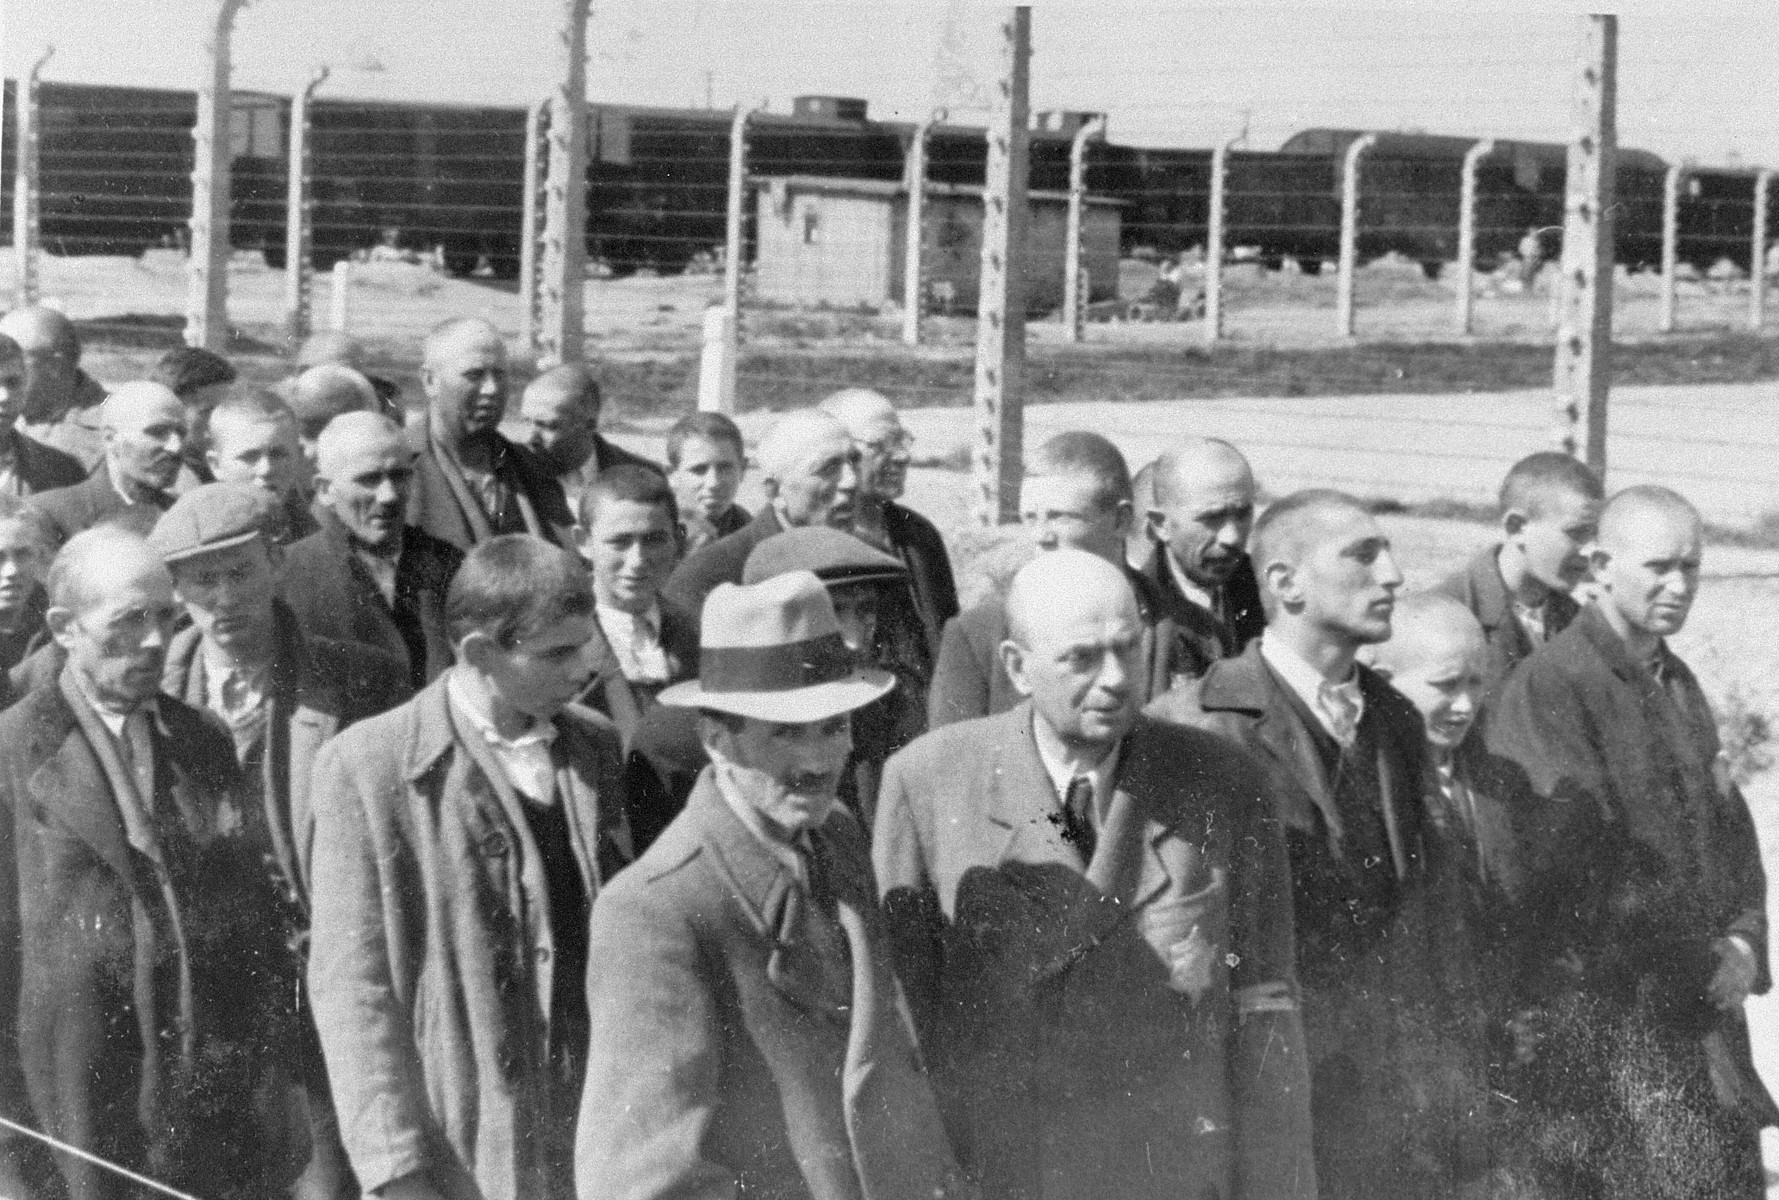 Jews from Subcarpathian Rus who have been selected for forced labor at Auschwitz-Birkenau, are marched to another section of the camp.